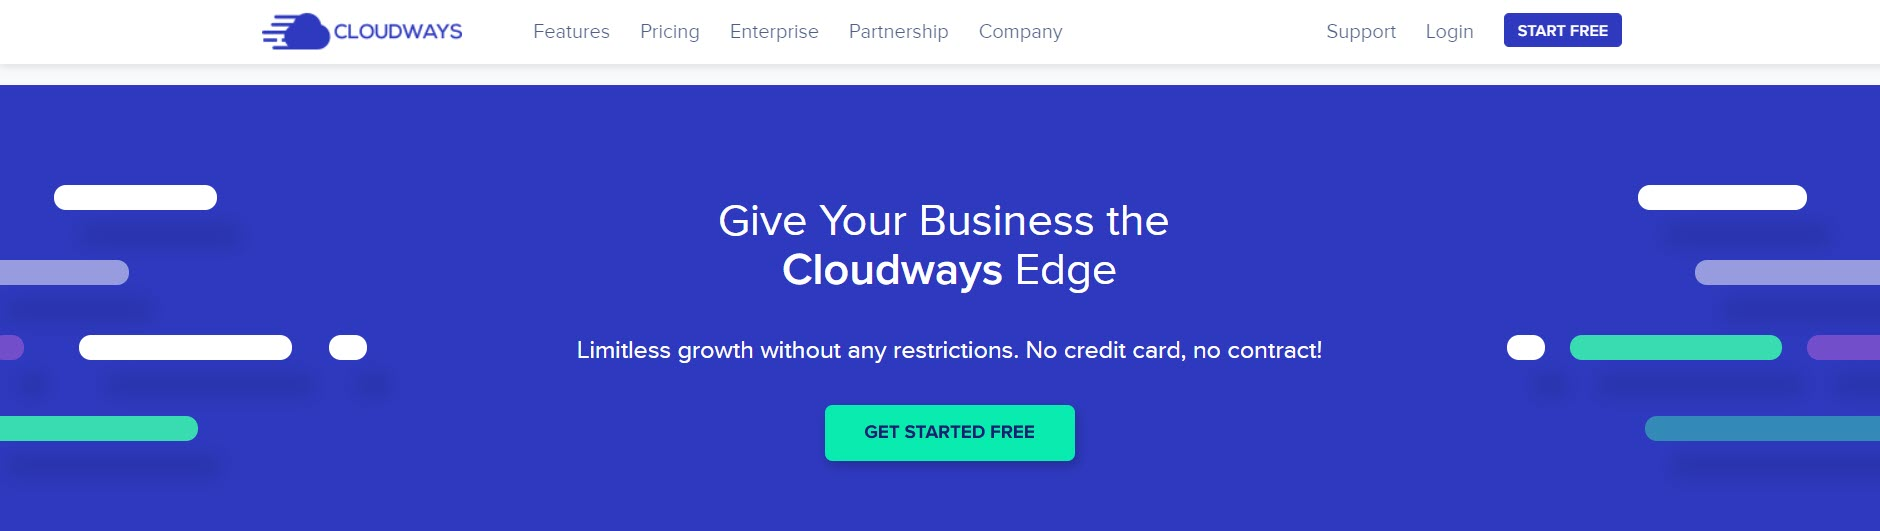 Cloudways Promo Codes